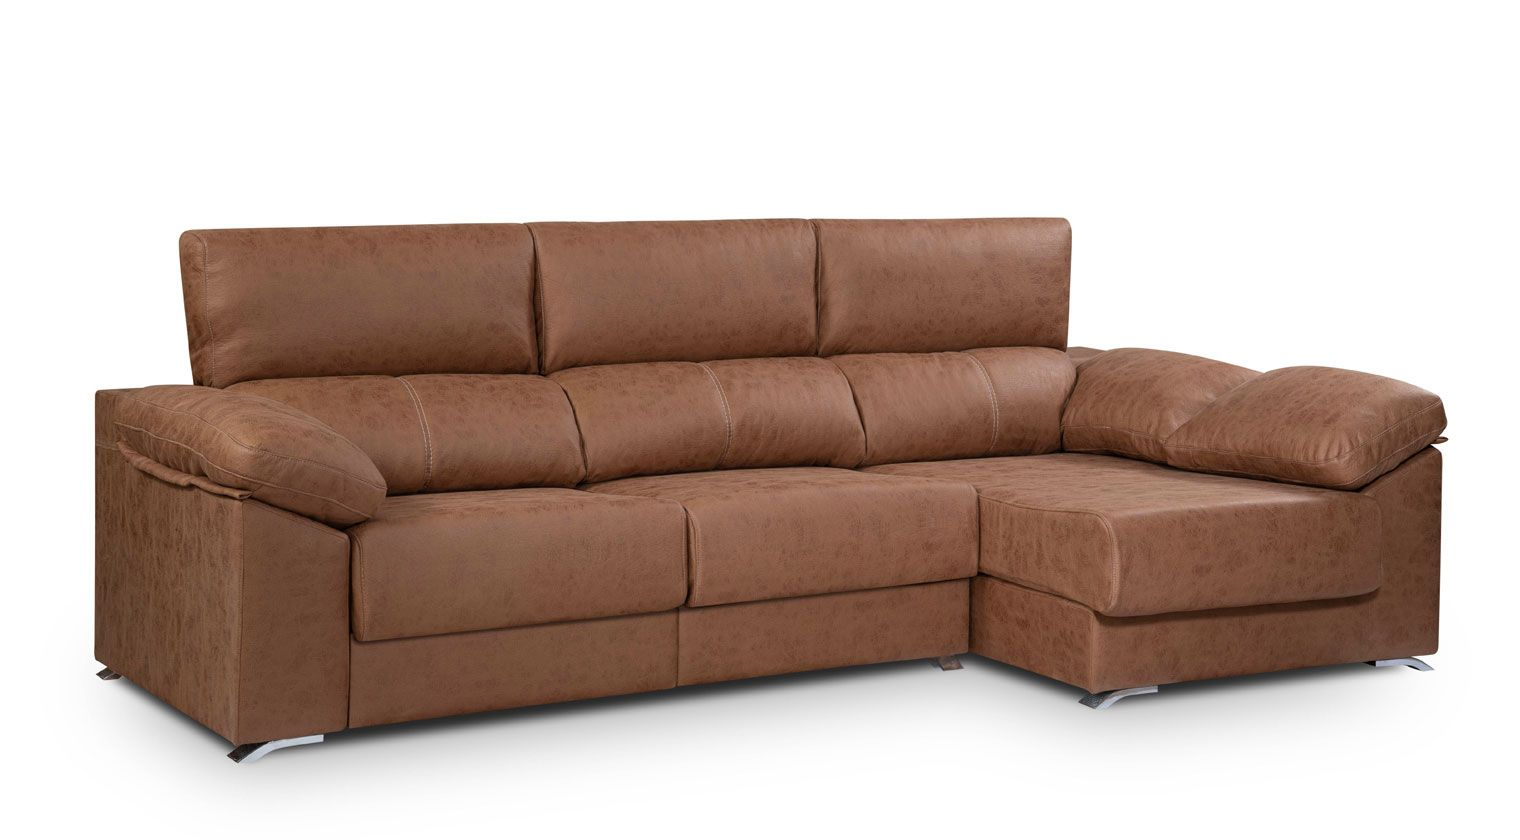 Comprar chaise longue tela lleida mod sofa 3 5 plazas for Sofas de una plaza baratos